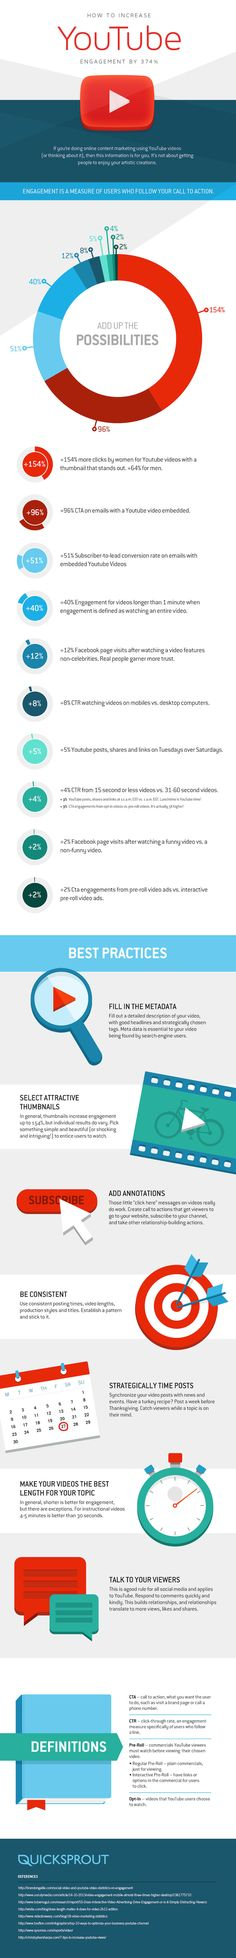 How To Increase Engagement on #YouTube - #infographic Do you use YouTube as a part of your marketing strategy?  Are you wondering how to get more viewers and engagement for your YouTube channel?  To show you how can you increase viewer engagement with your YouTube videos Quicksprout designed an infographic that shows what exactly you need to do.   Read more: http://www.digitalinformationworld.com/2014/06/best-practices-for-improving-engagement-on-youtube.html#ixzz34DPgQGIs